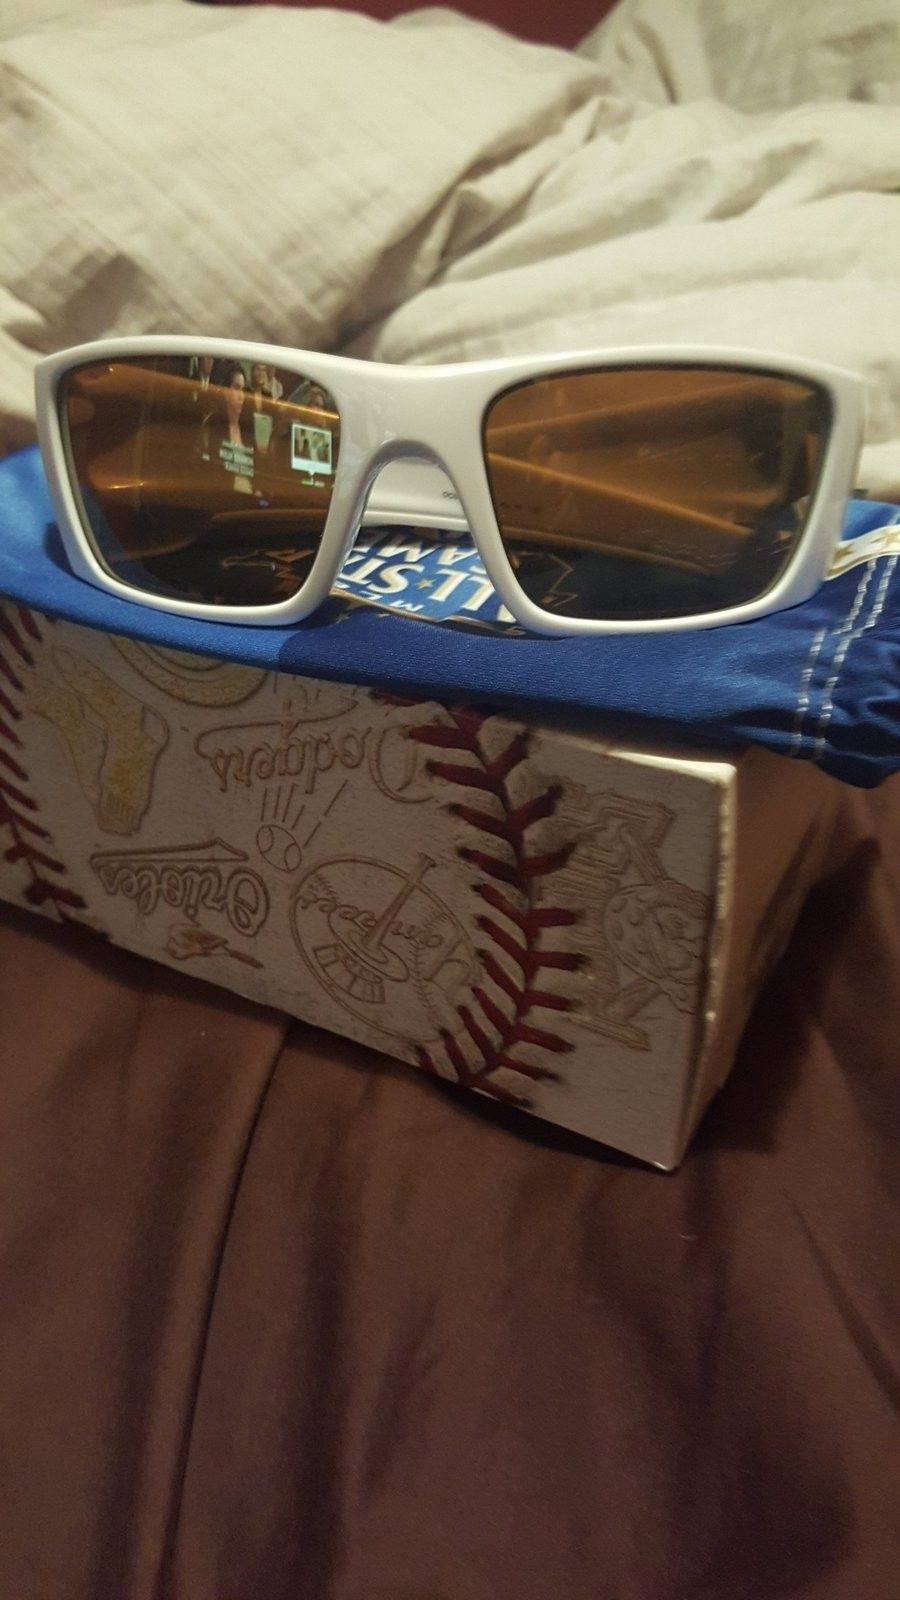 2012 mlb all star FUEL CELL BNIB - 20151204_220014.jpg